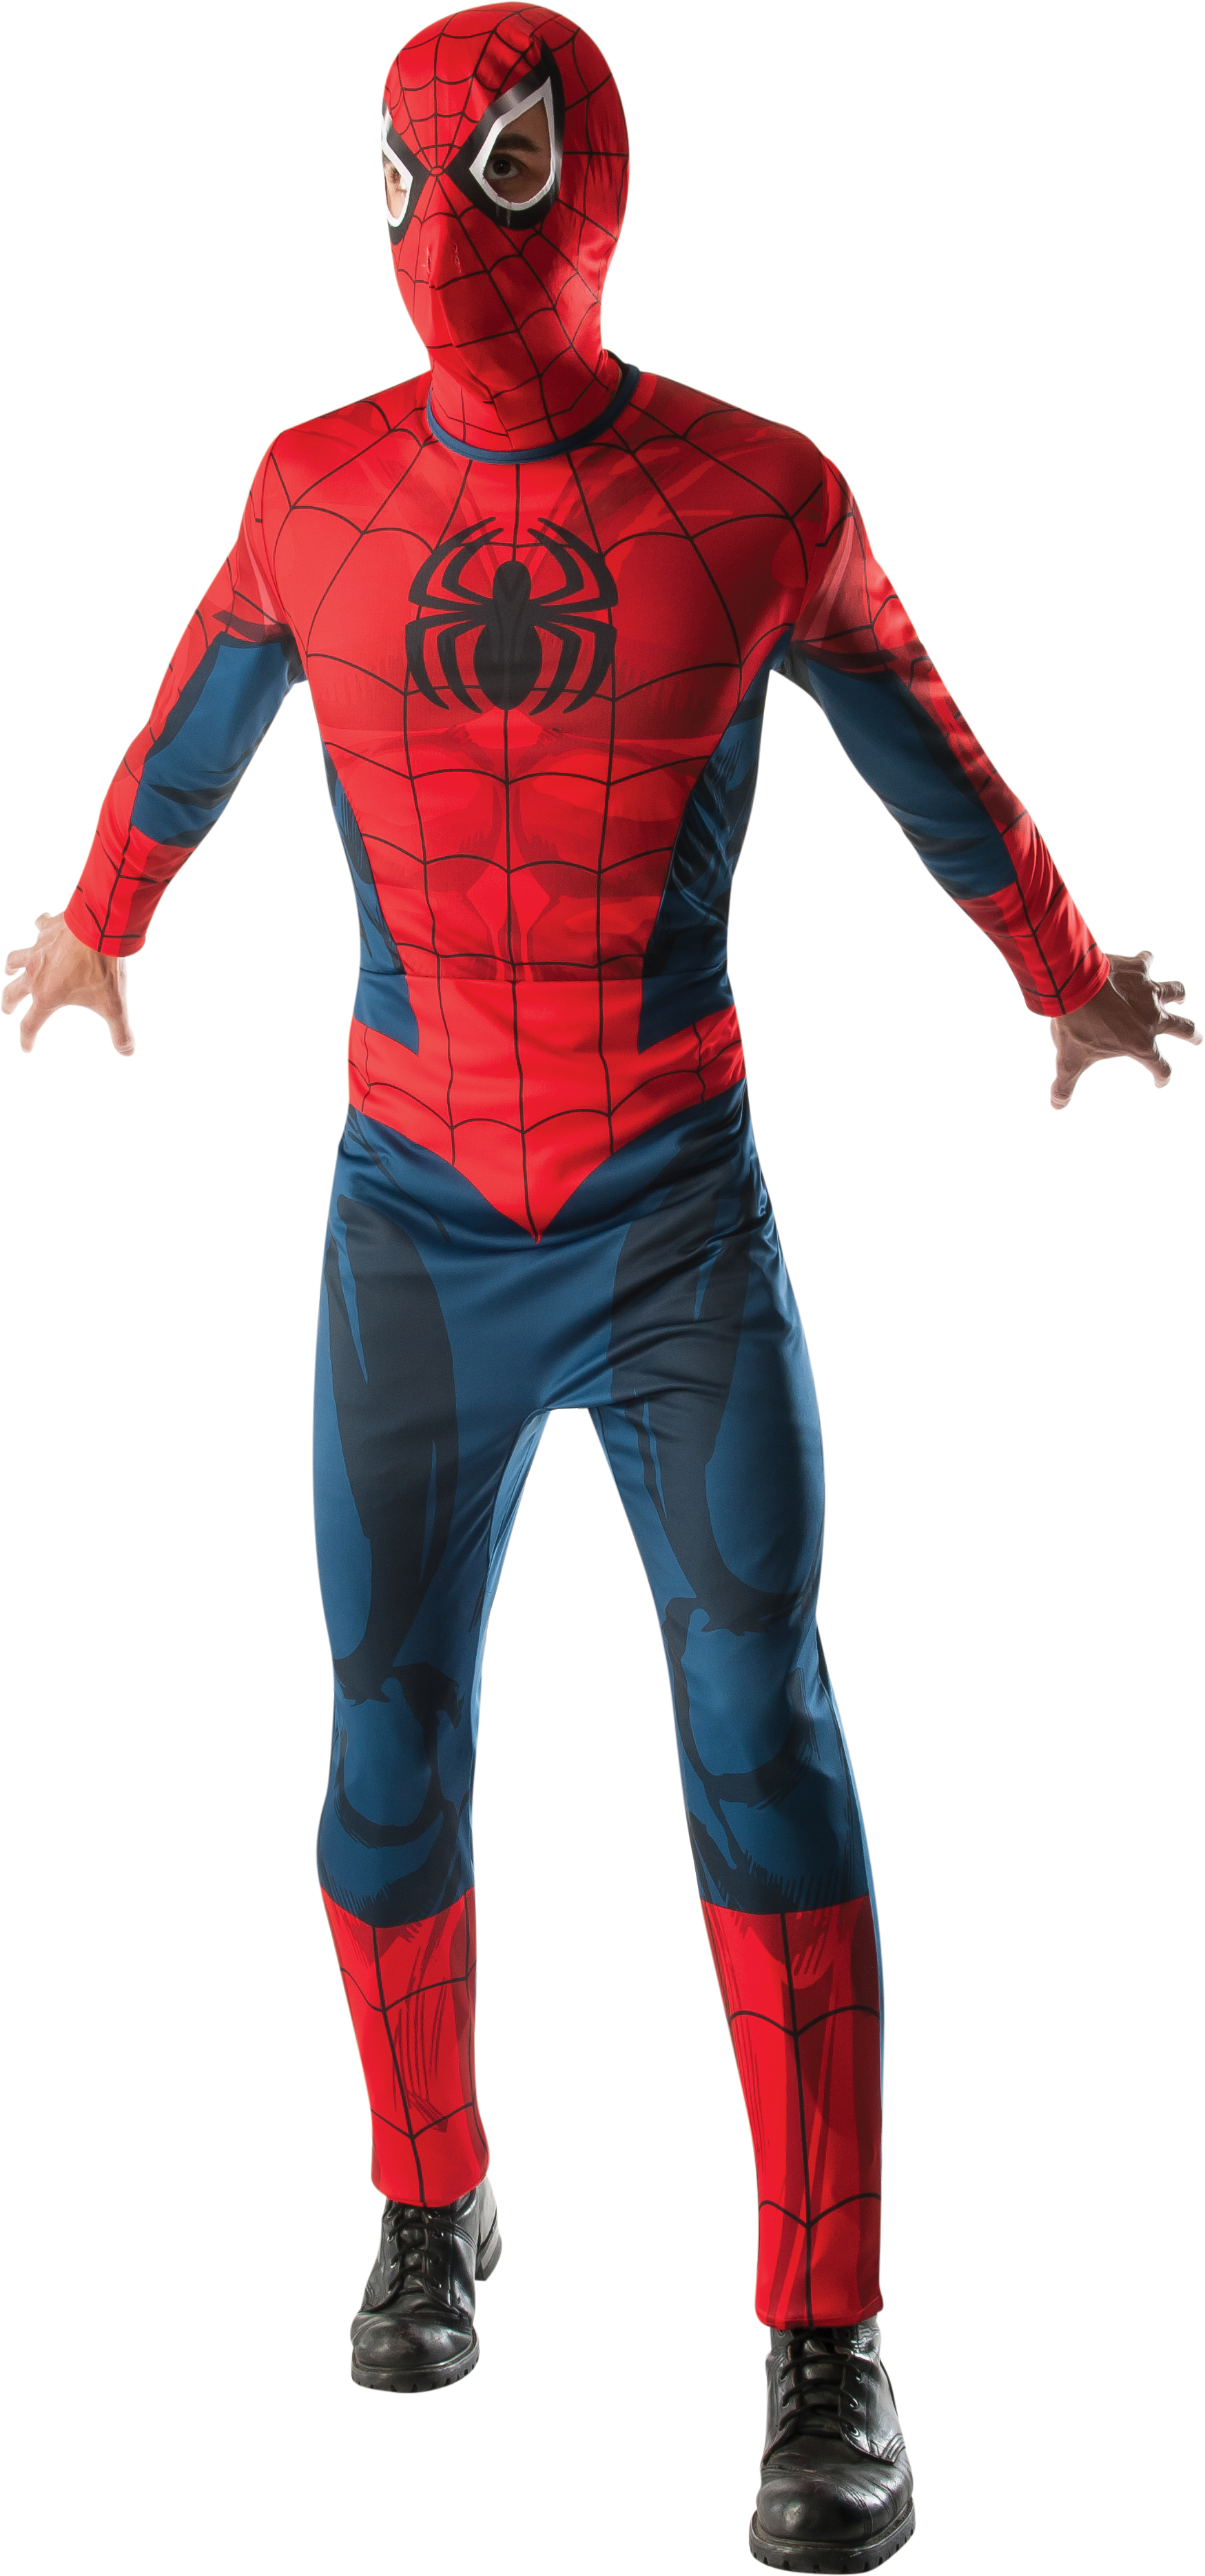 Adult Spiderman Mens Halloween Costume PartNumber: 009W008934988001P KsnValue: 8934988 MfgPartNumber: 820005